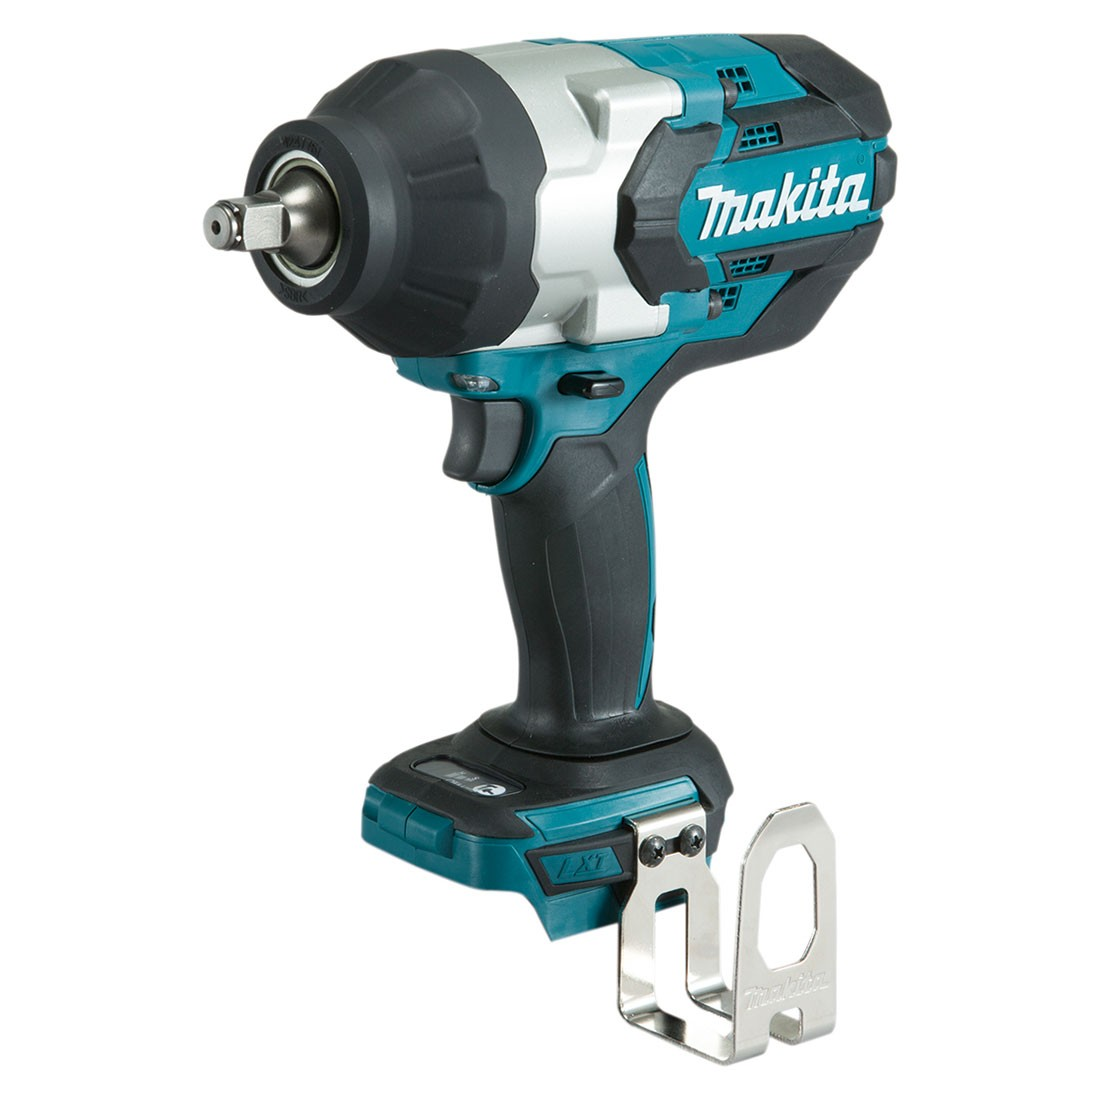 makita dtw1002z 18v lxt brushless 1 2 impact wrench body only powertool world. Black Bedroom Furniture Sets. Home Design Ideas